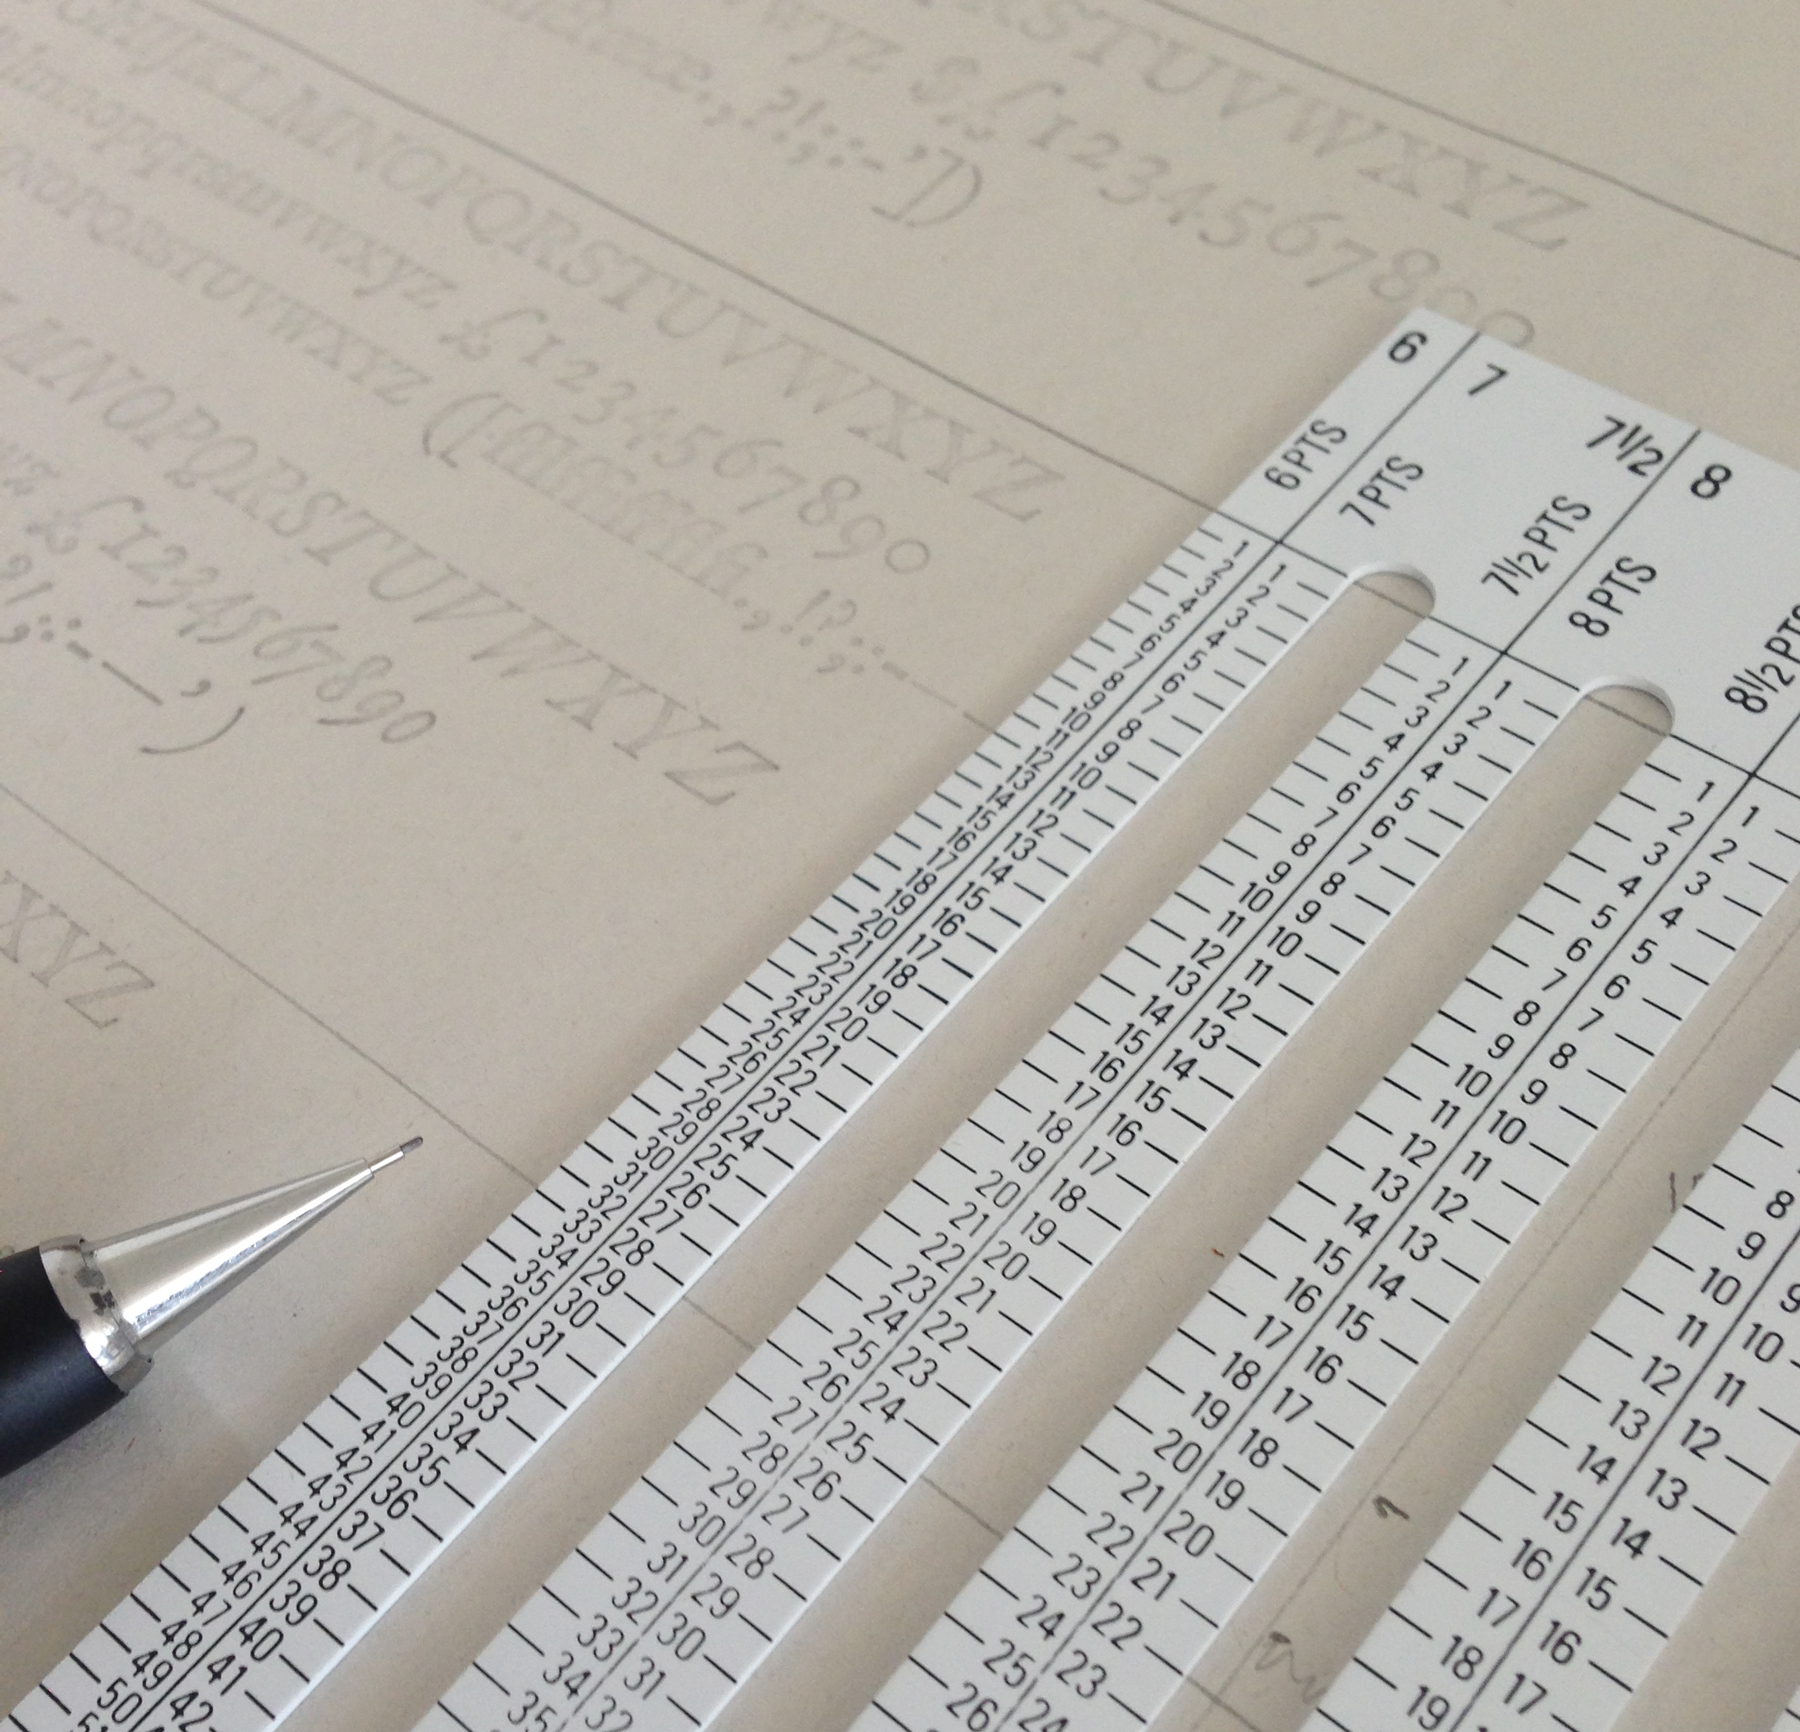 Measuring_Proofs